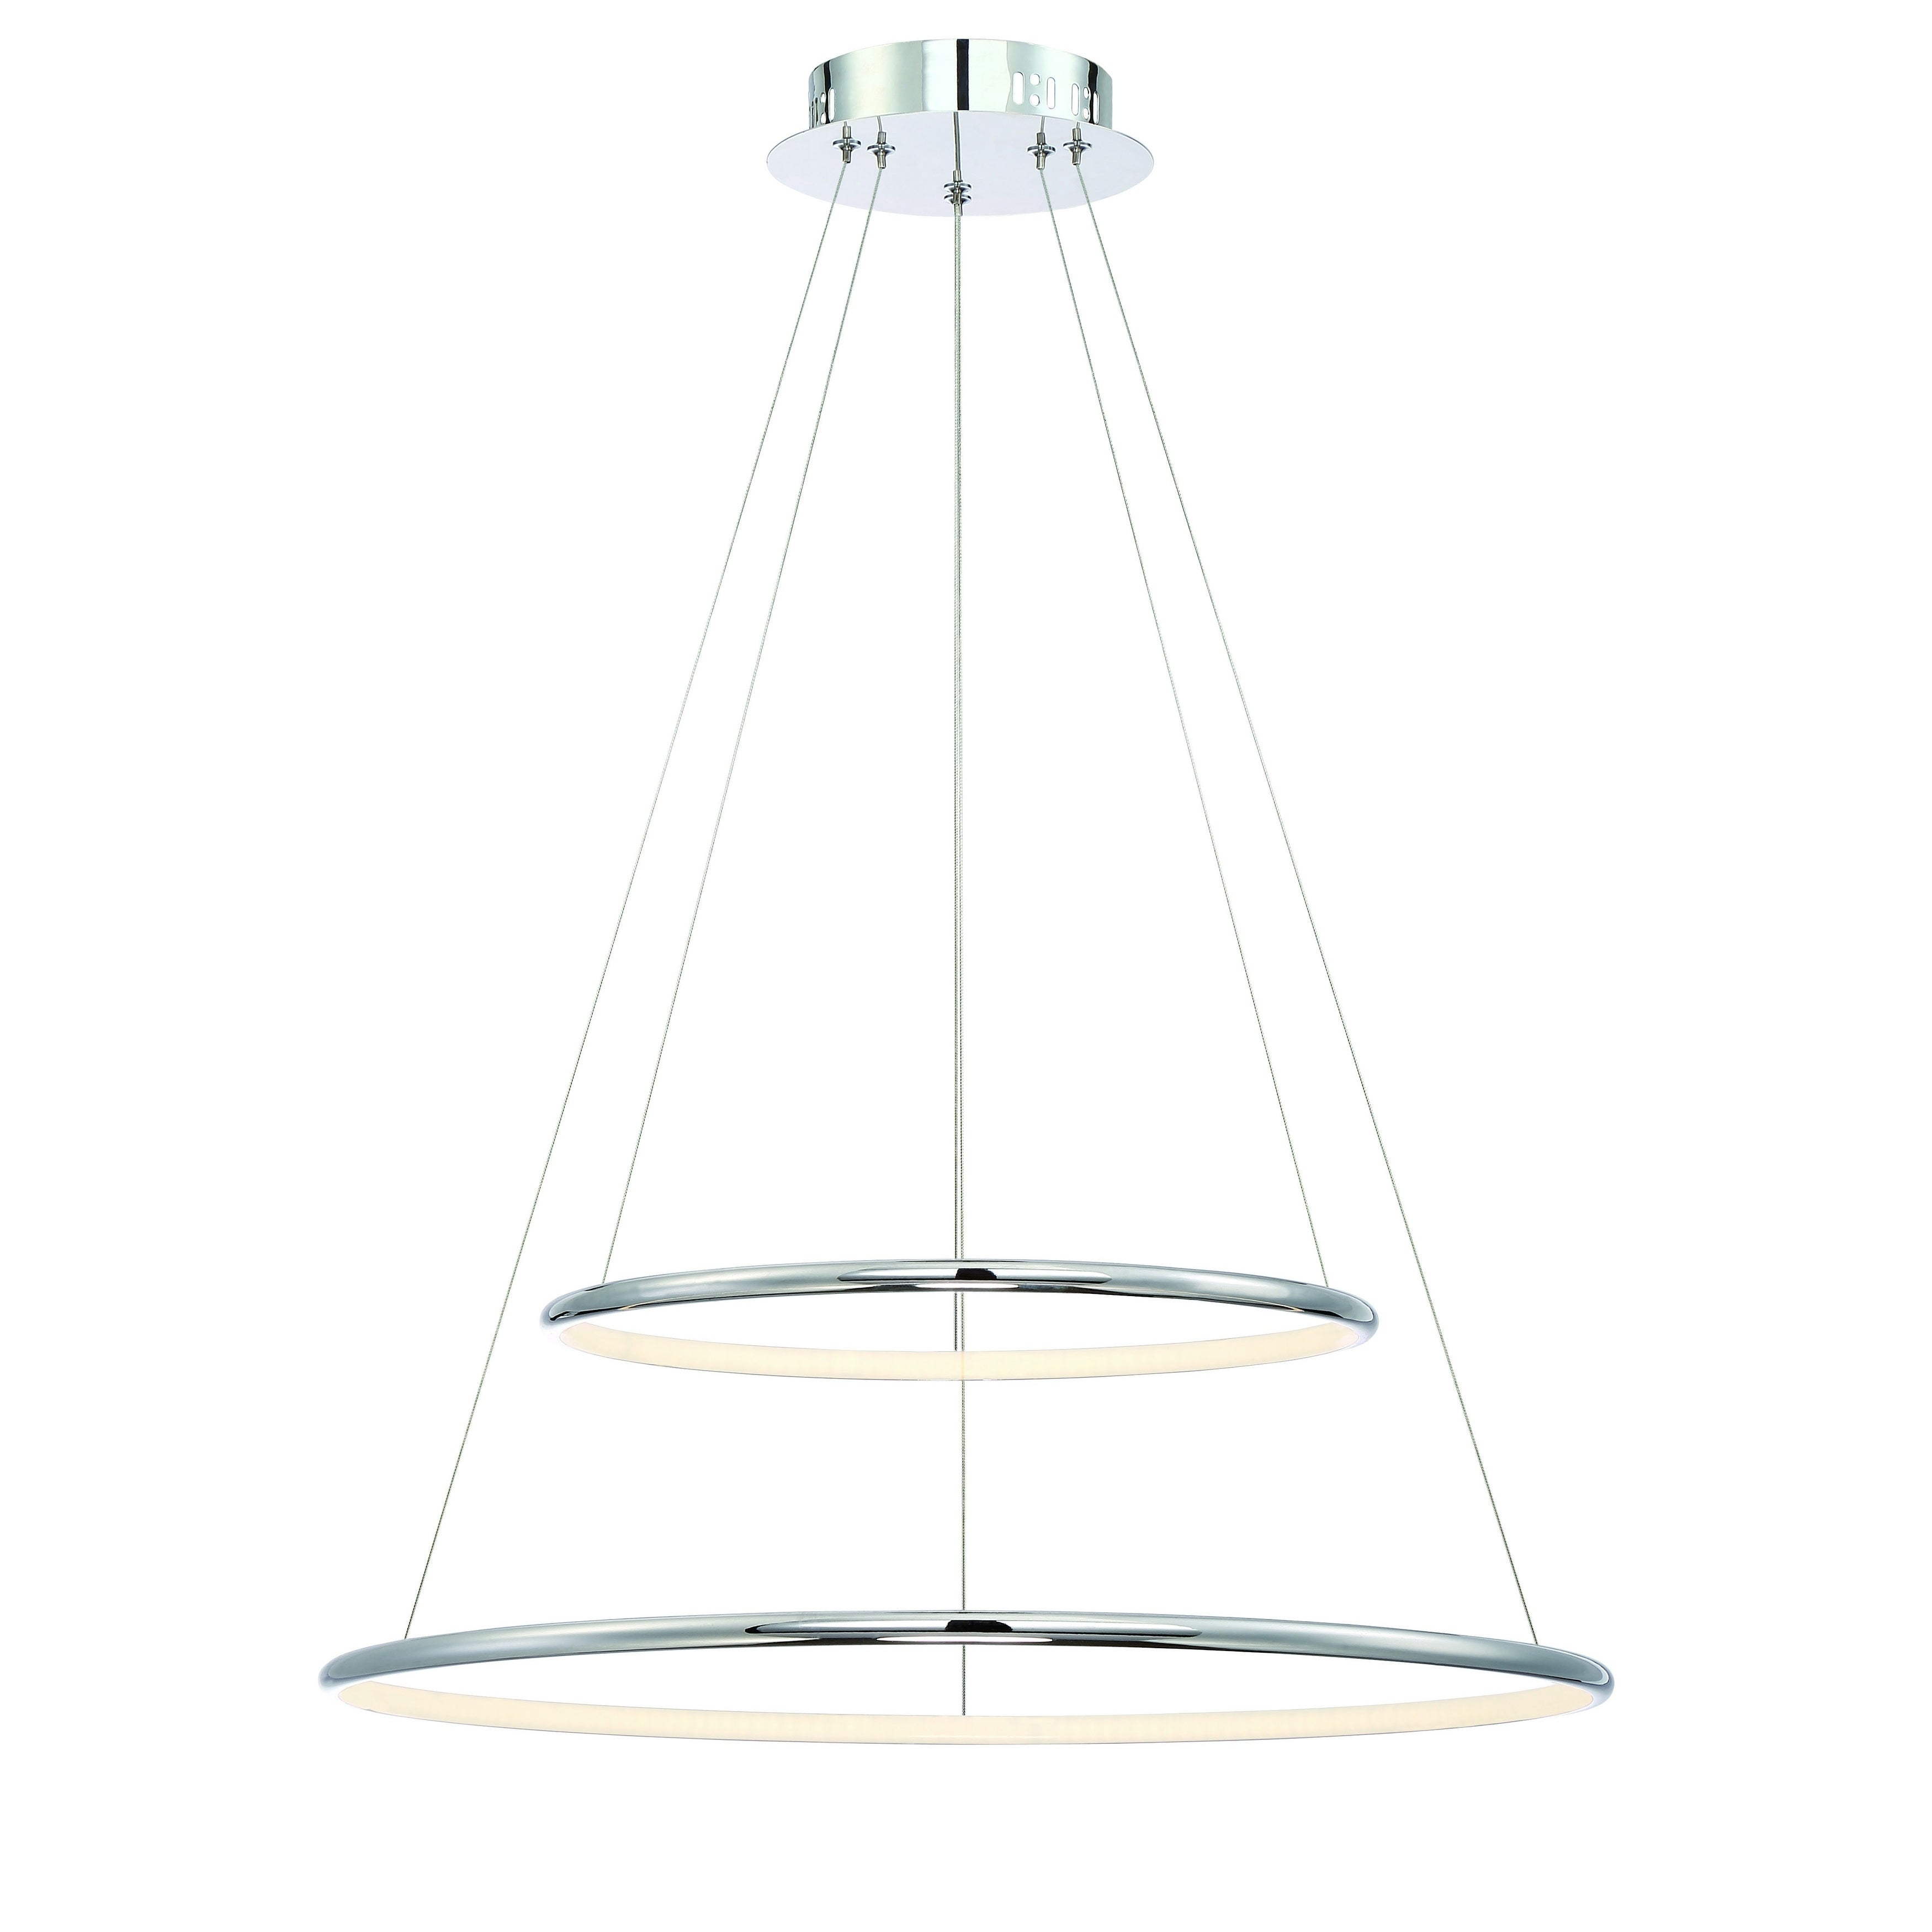 Shop eurofase valley contemporary led two tier ring light pendant shop eurofase valley contemporary led two tier ring light pendant carved polished chrome finish 235 inches in diameter 31856 010 free shipping today aloadofball Image collections